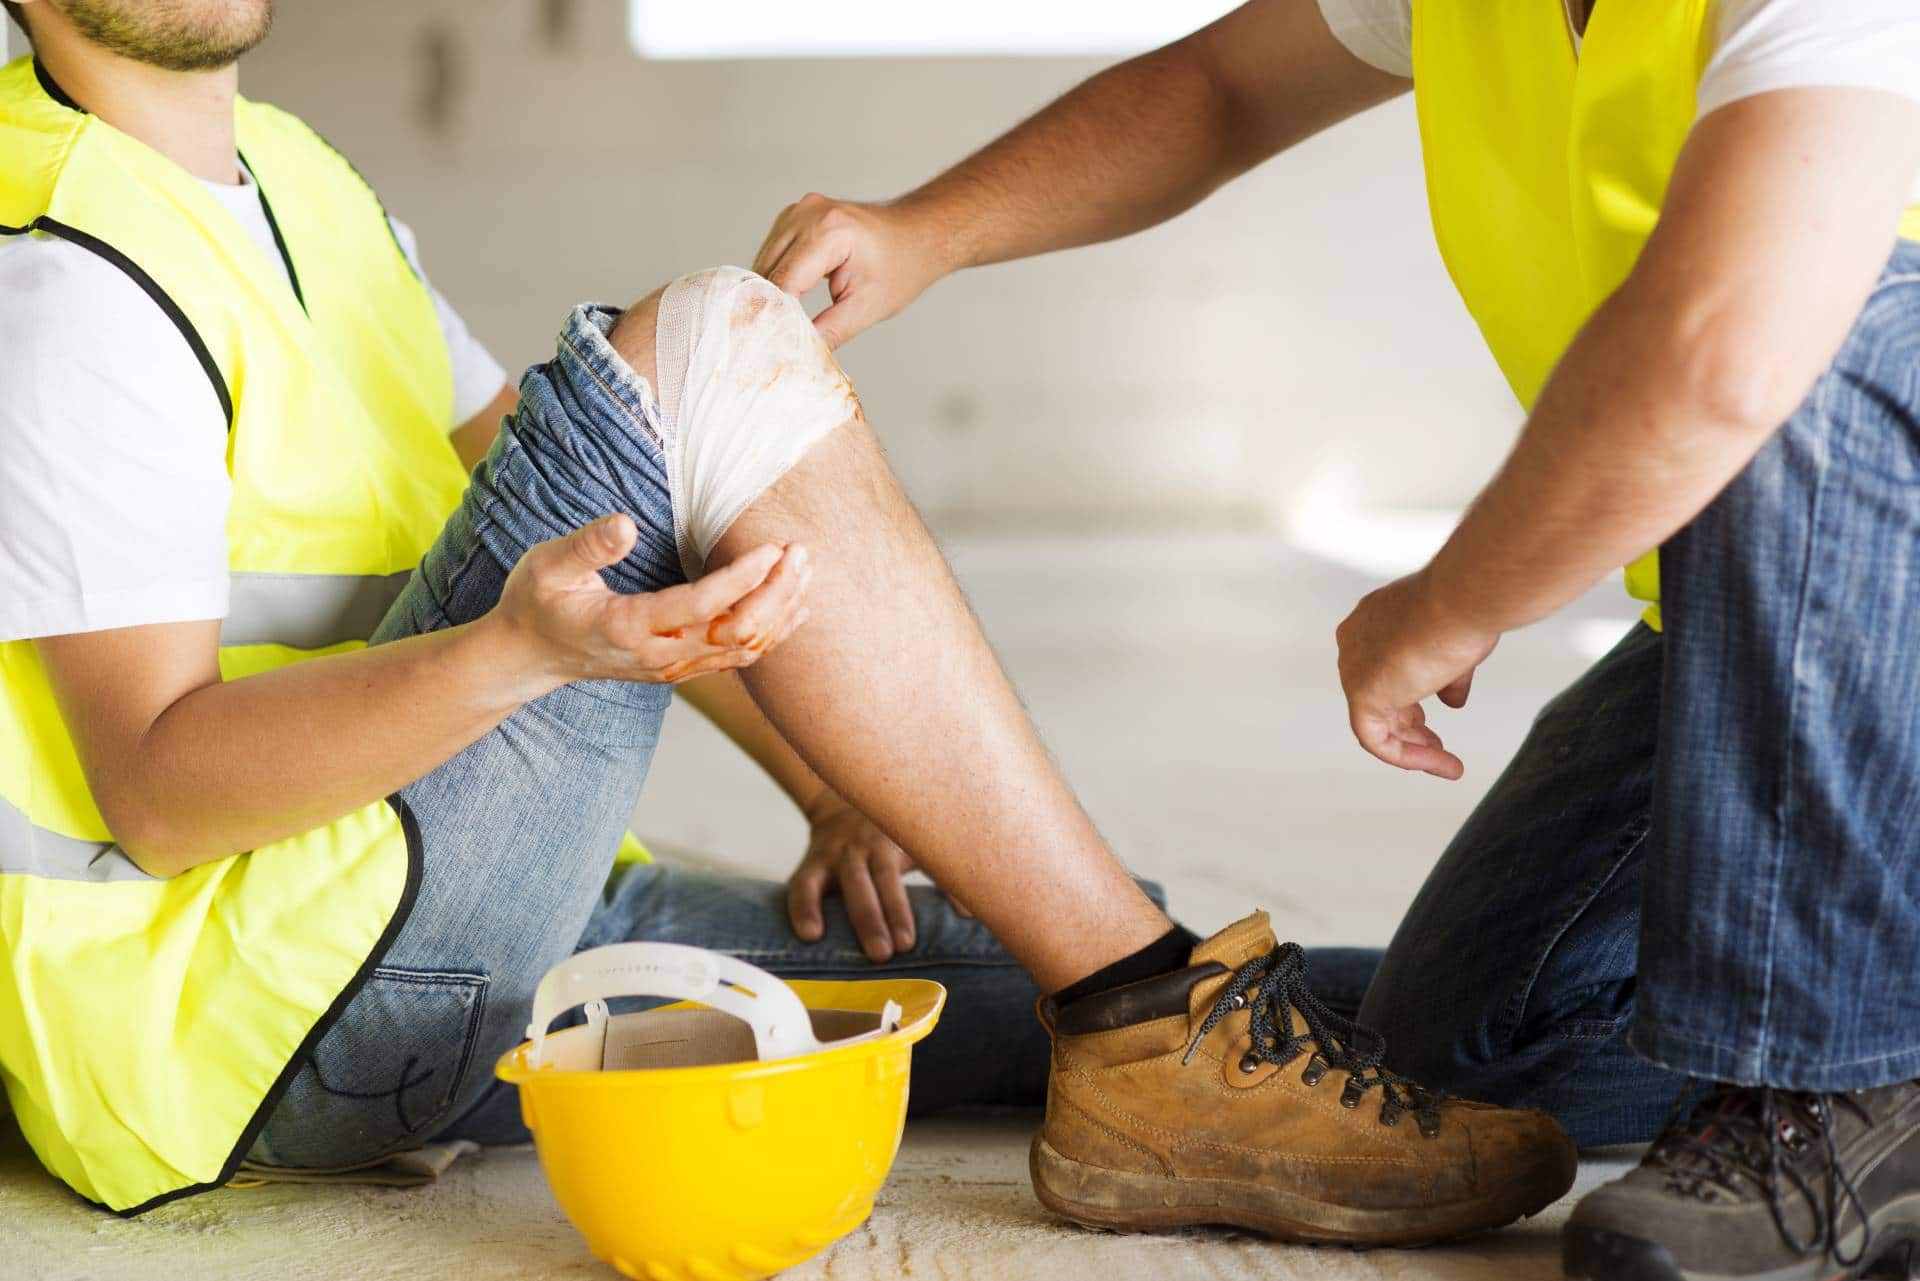 Hurt on the job? Schedule a free consultation with our personal injury lawyers at the Angell Law Firm in Panthersville, Ga.